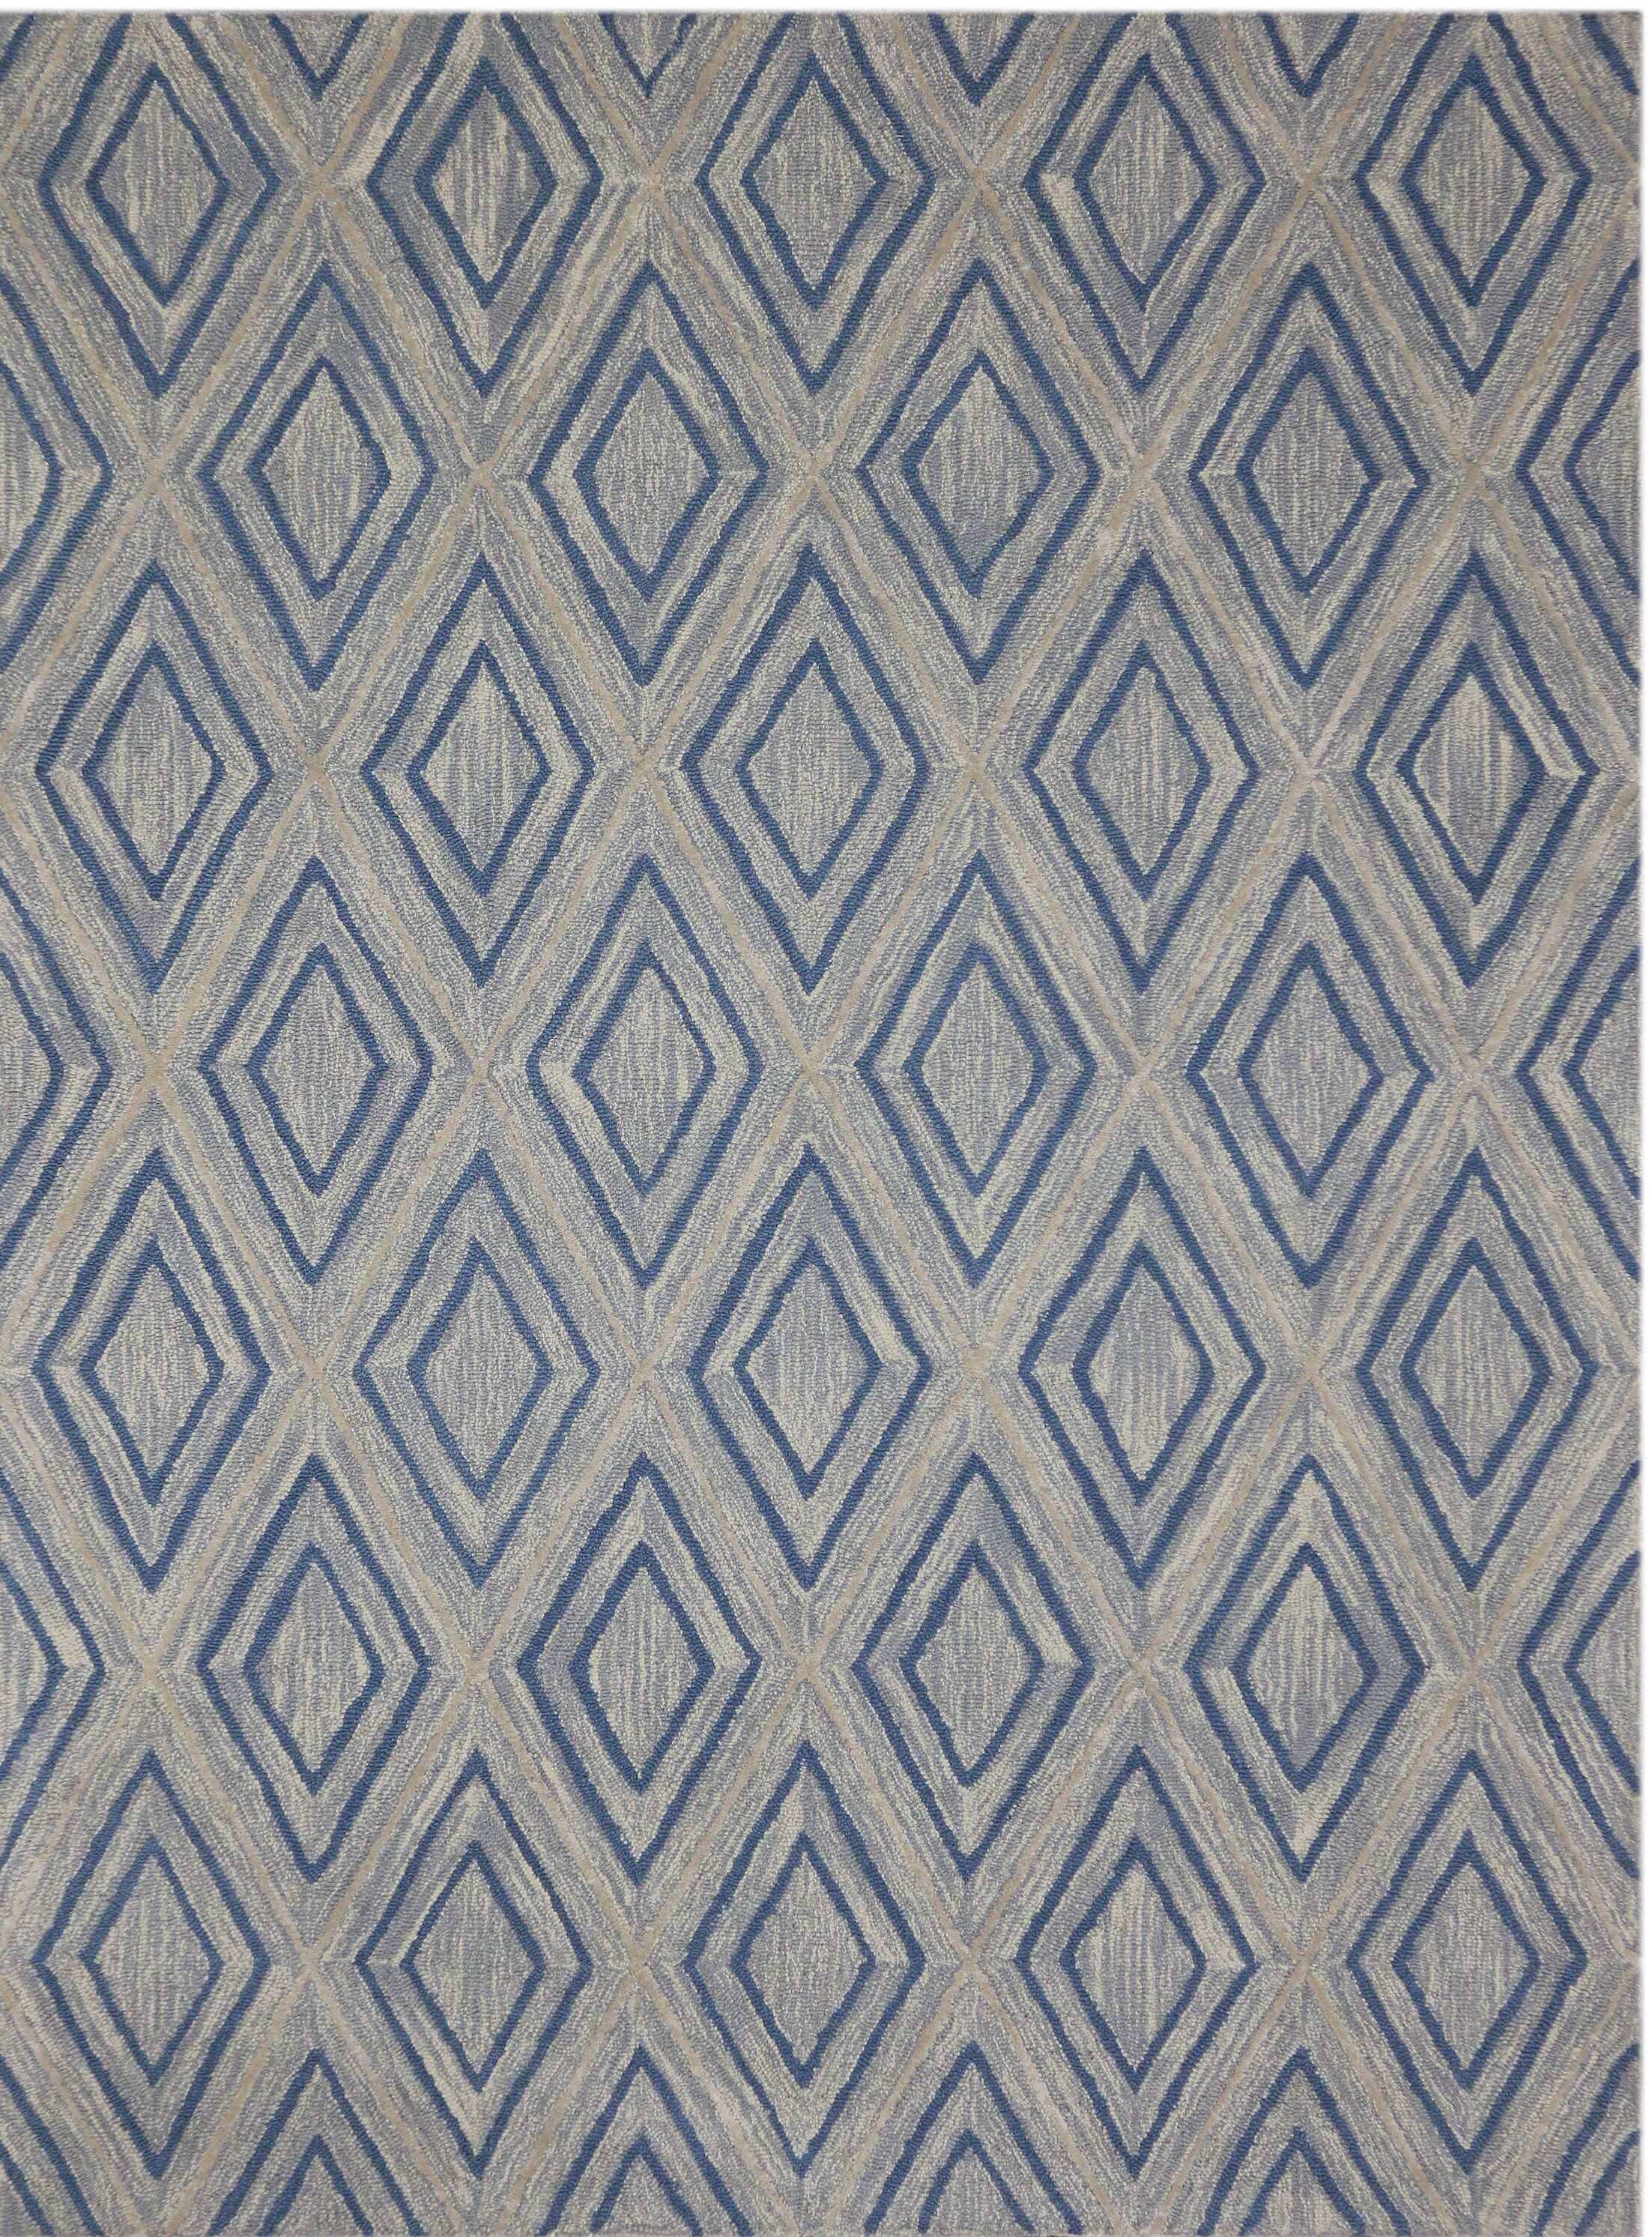 Weesner Hand-Tufted Gray Area Rug Rug Size: 7'6